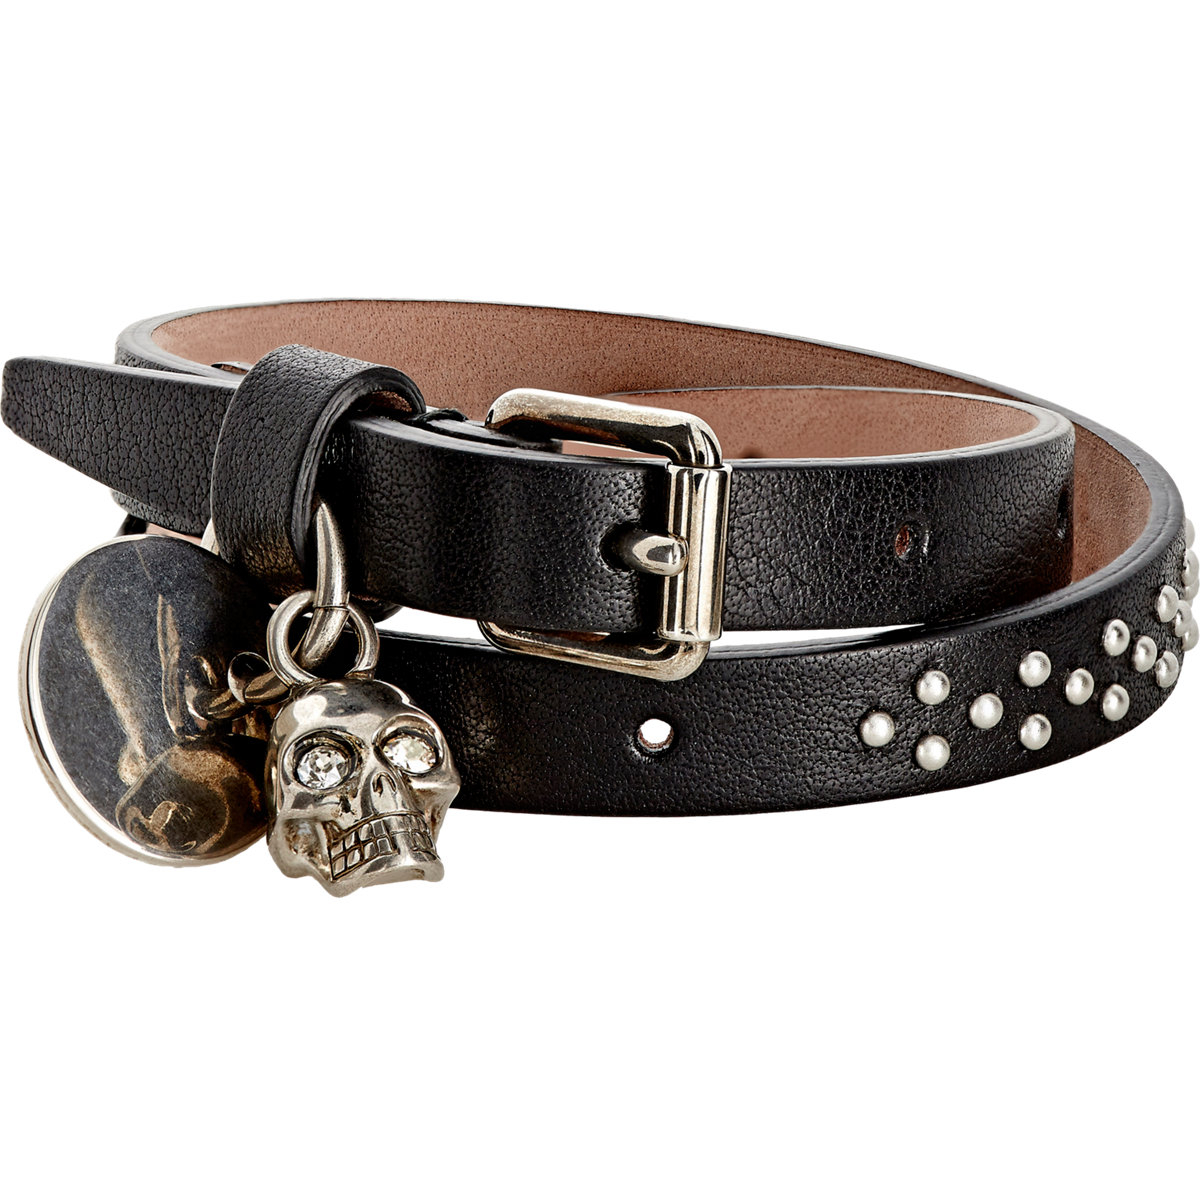 Leather Wrap Charm Bracelet: Alexander Mcqueen Studded Leather Wrap Bracelet